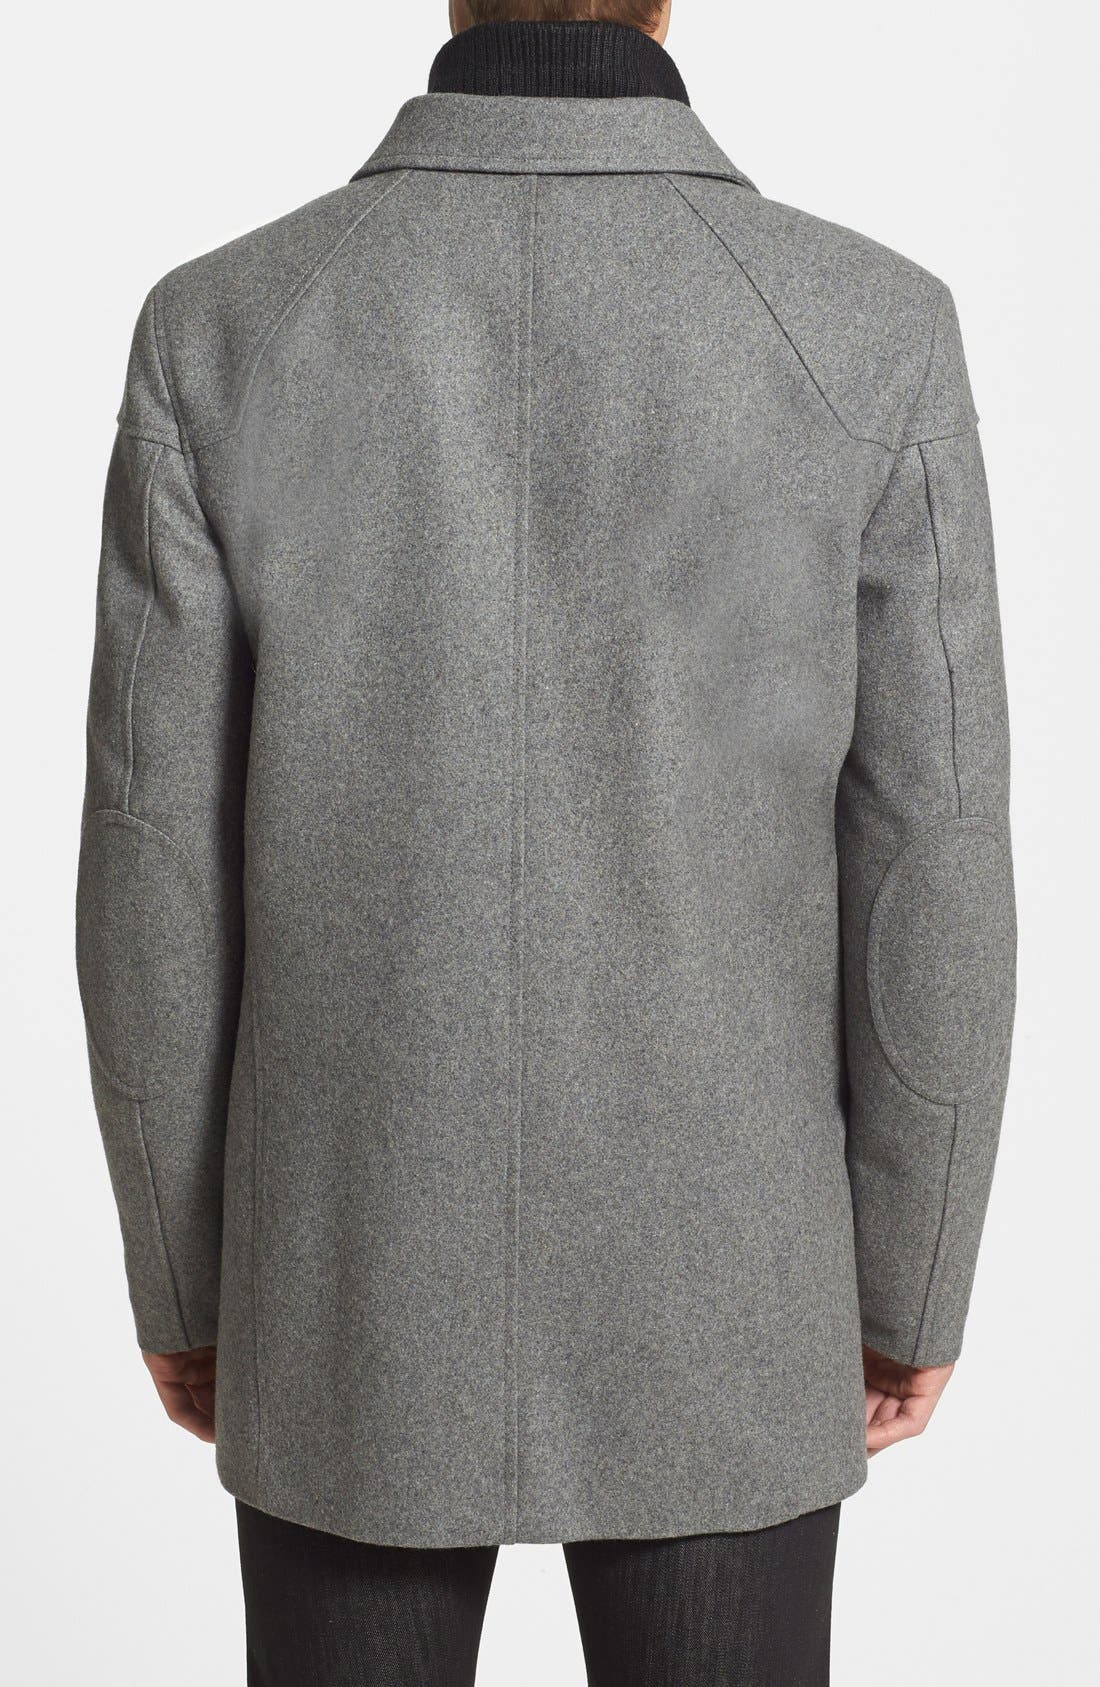 VINCE CAMUTO, Melton Car Coat with Removable Bib, Alternate thumbnail 2, color, HEATHER GREY